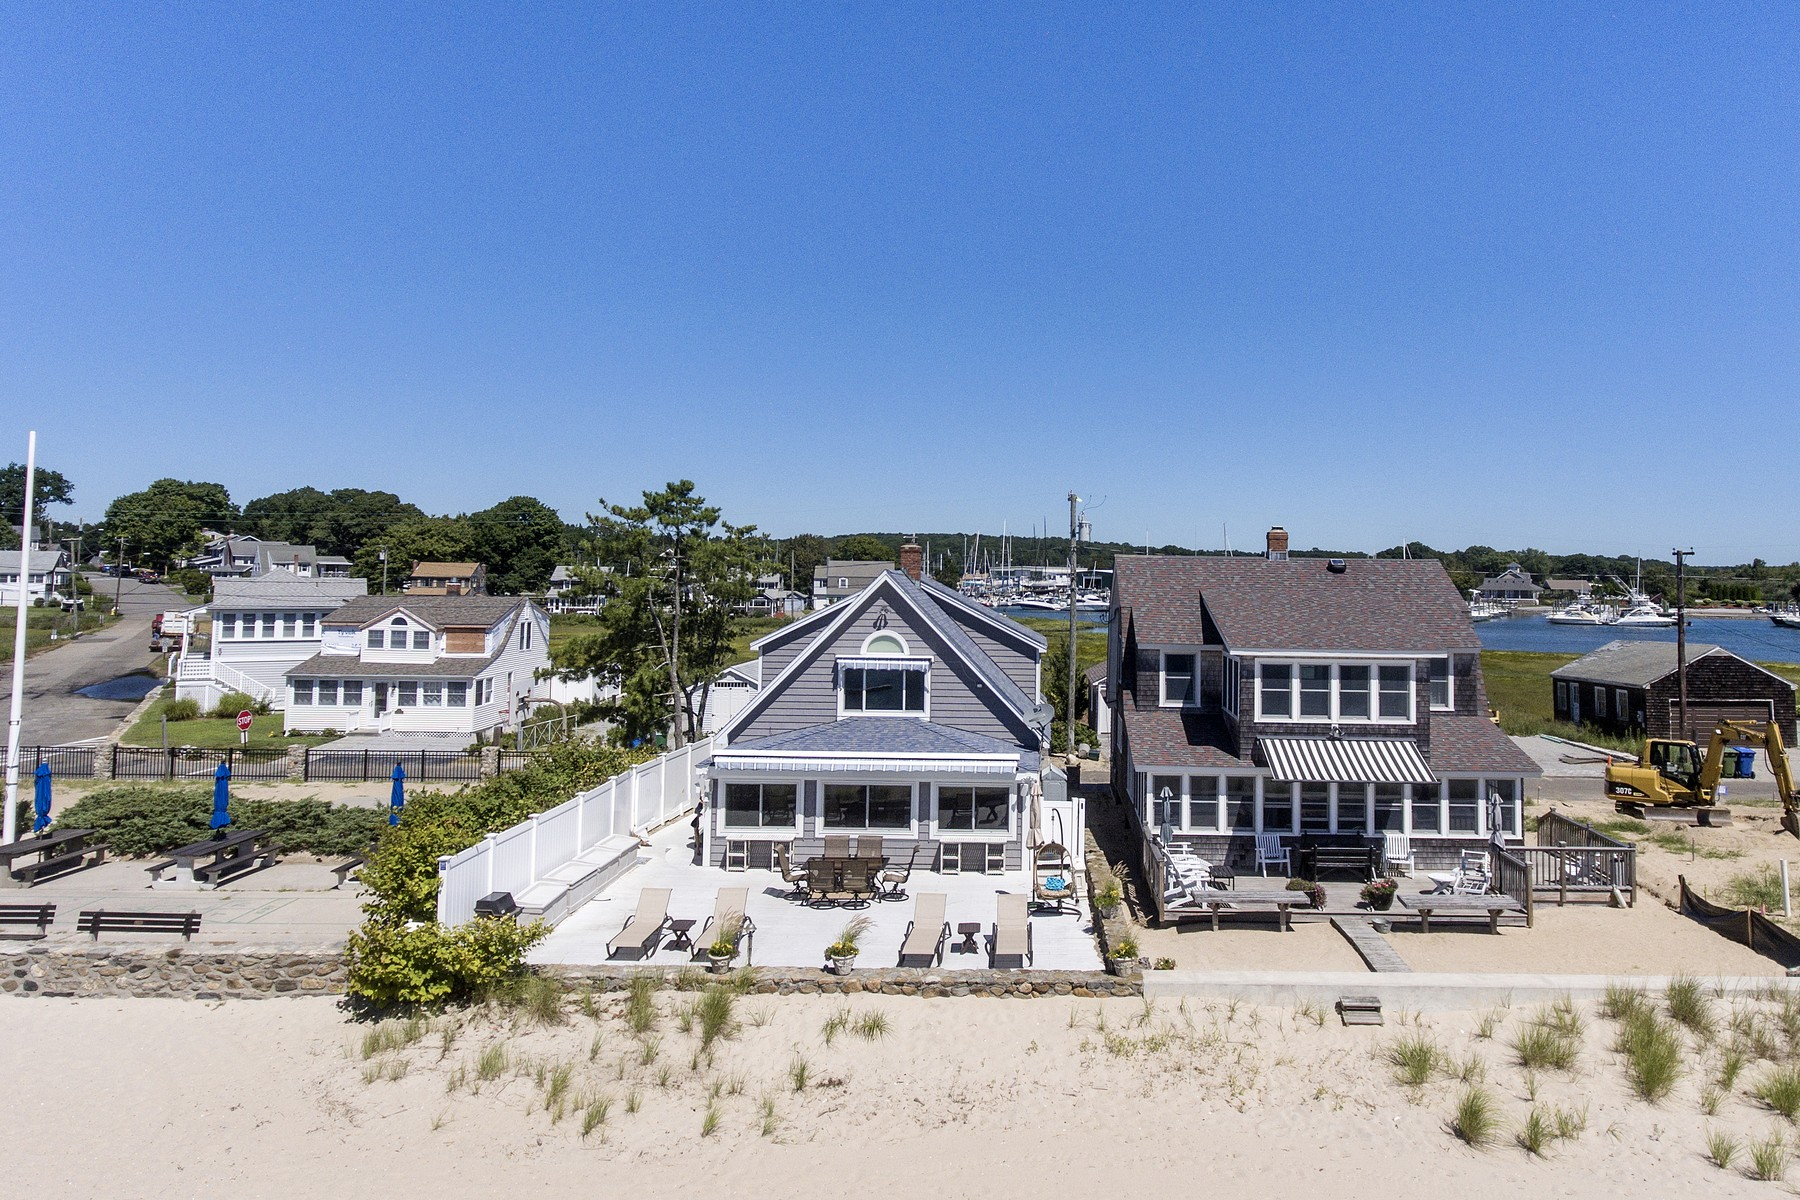 Maison unifamiliale pour l Vente à A True Beach Home, Just one Step to The Sand 105 Old Mail Trl Westbrook, Connecticut, 06498 États-Unis